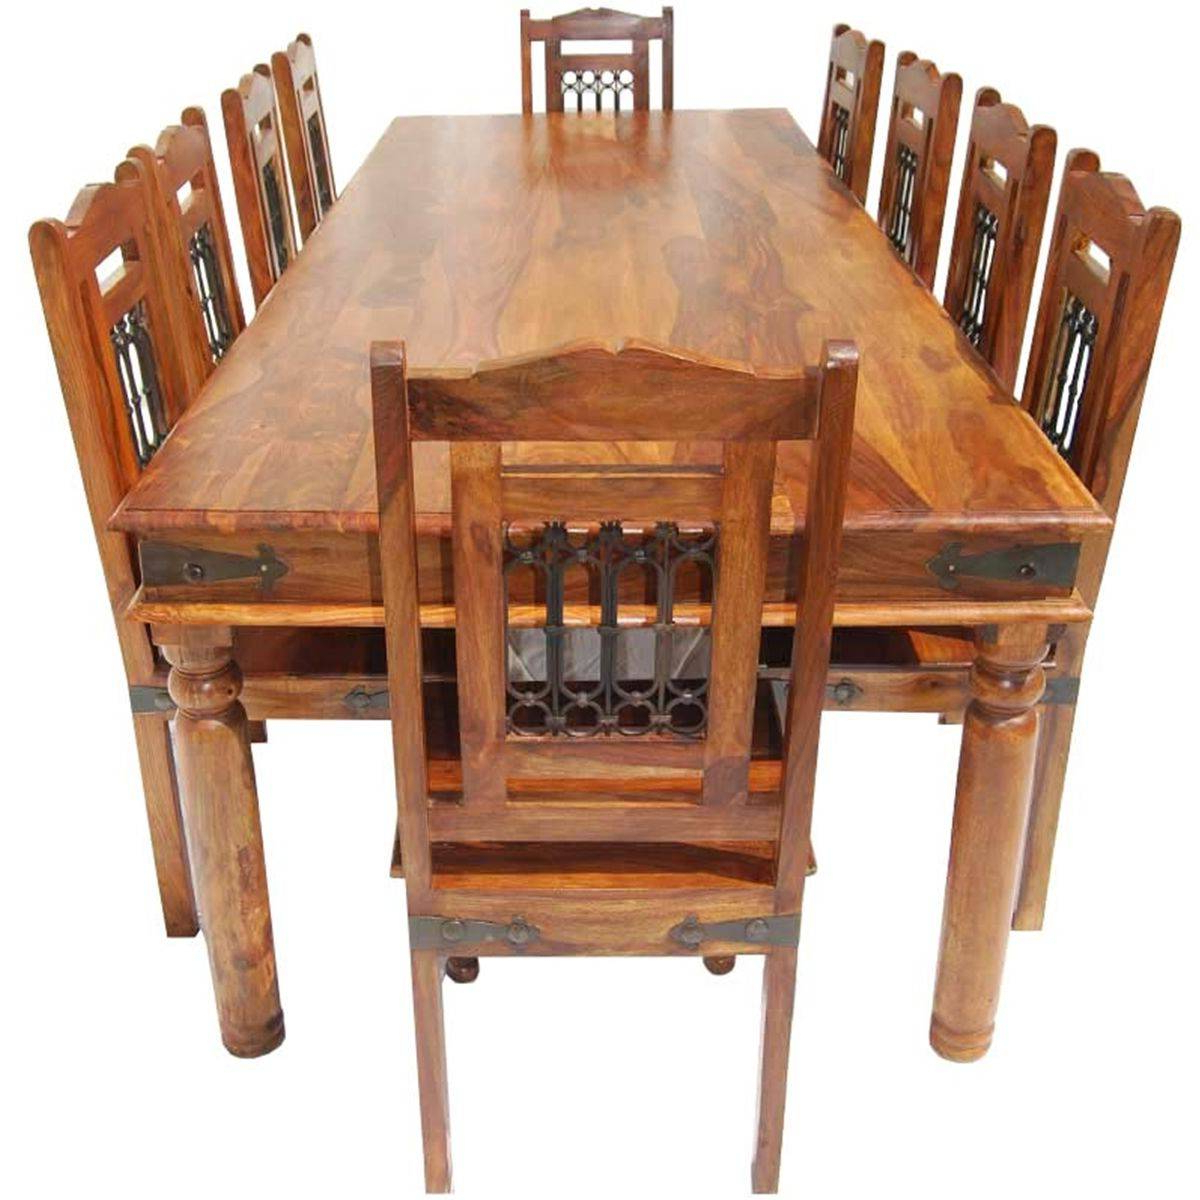 2019 Rustic Furniture Large Dining Table Room Set Seats For with regard to Large Rustic Look Dining Tables